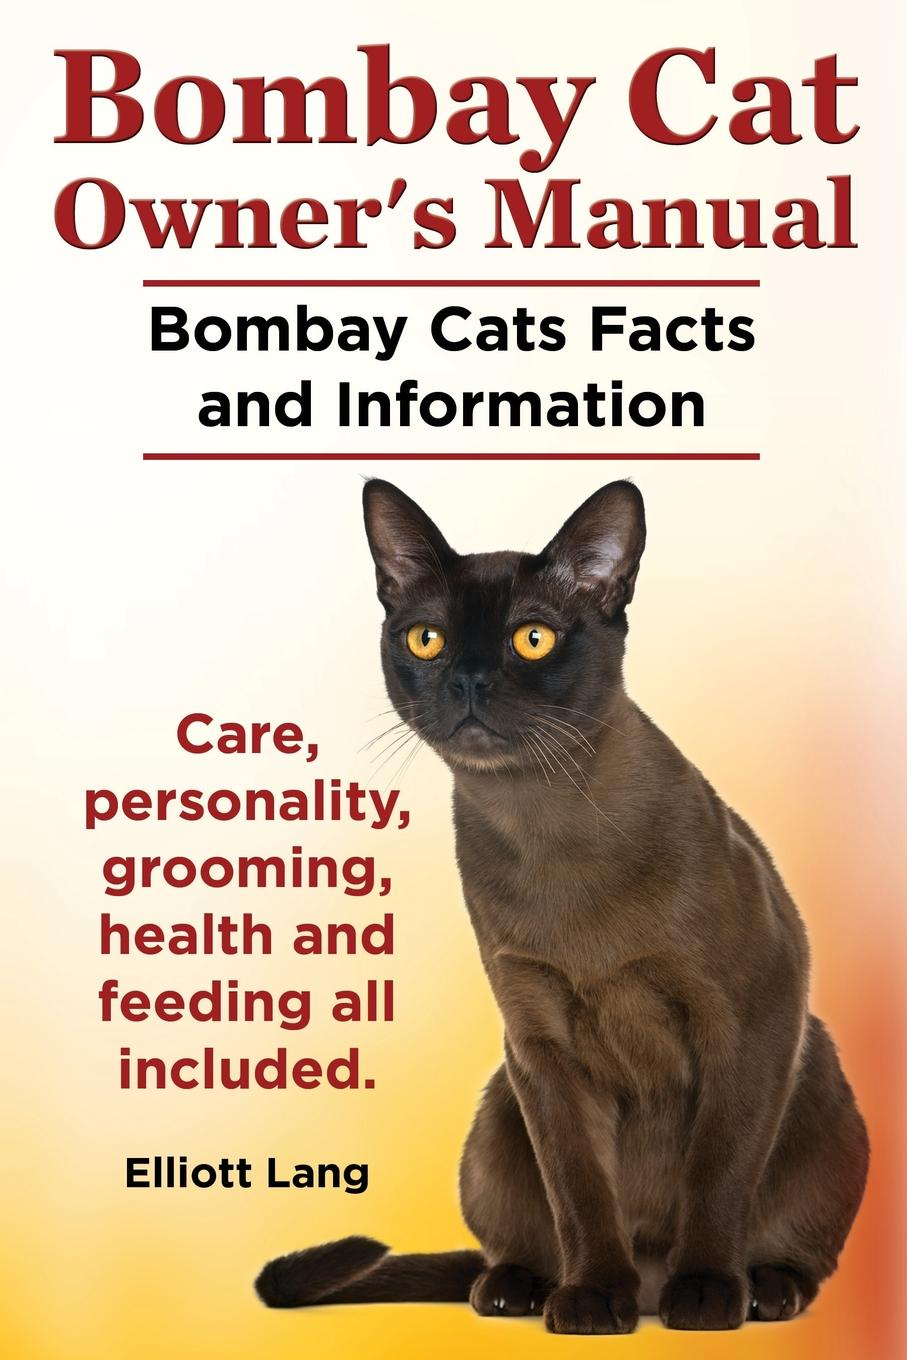 Elliott Lang Bombay Cat Owner's Manual. Bombay Cats Facts and Information. Care, Personality, Grooming, Health and Feeding All Included. цена в Москве и Питере